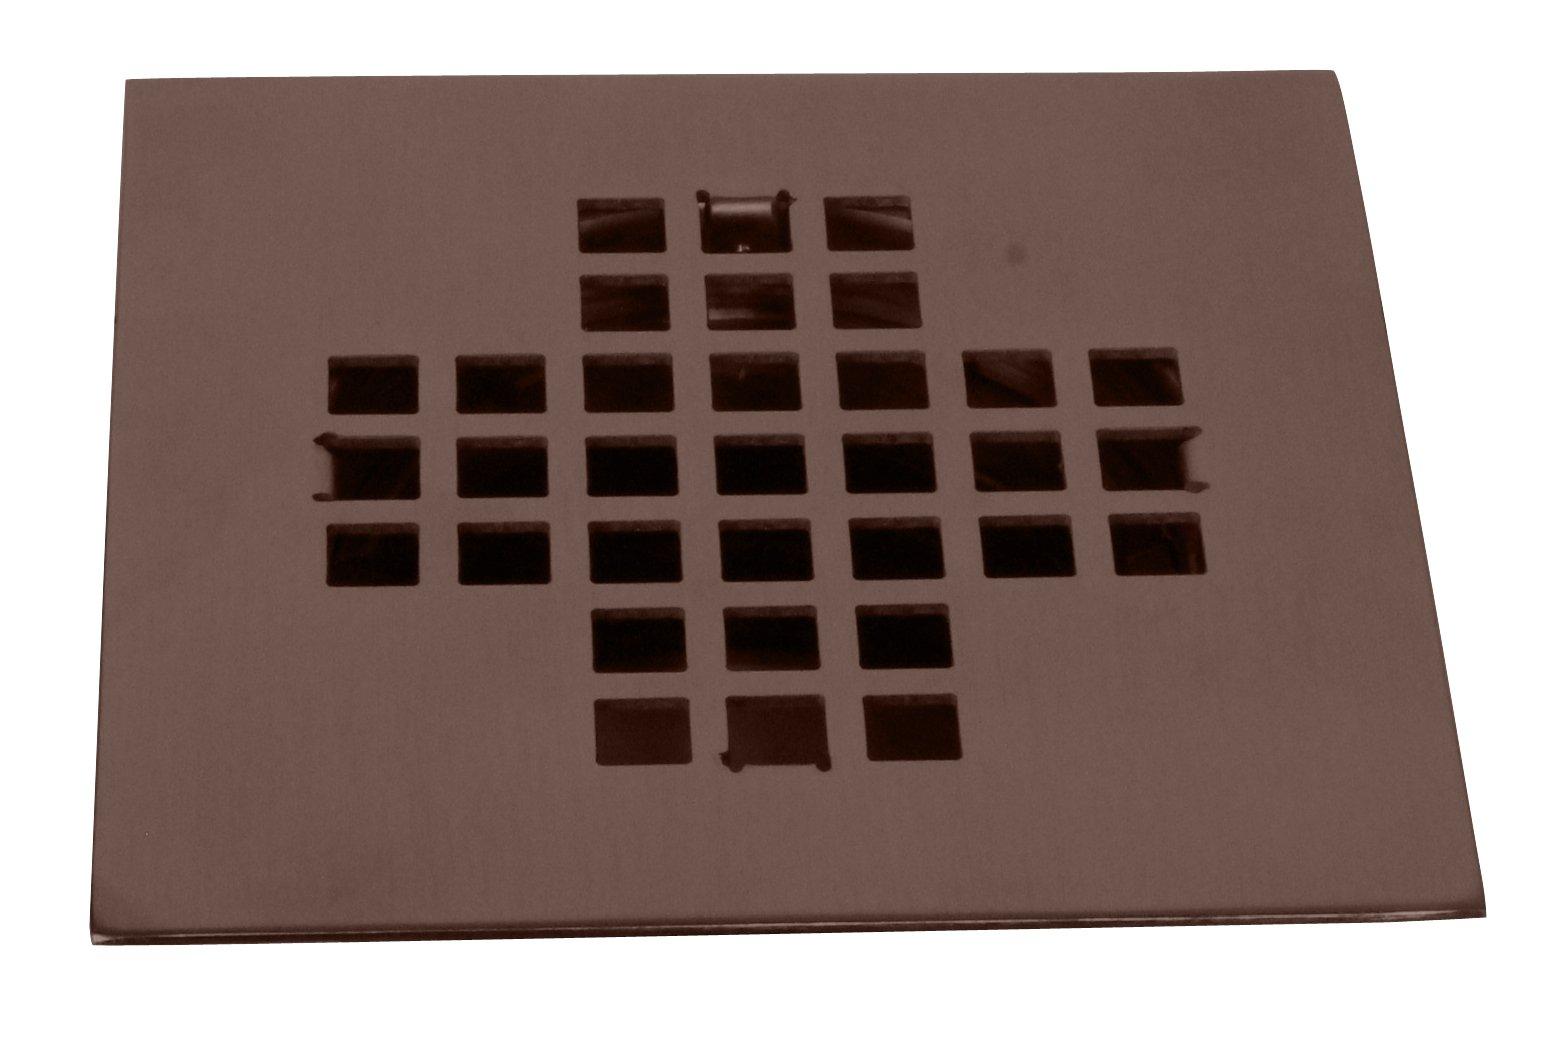 Westbrass Square Shower Drain Cover, Oil Rubbed Bronze, D206-SQG-12